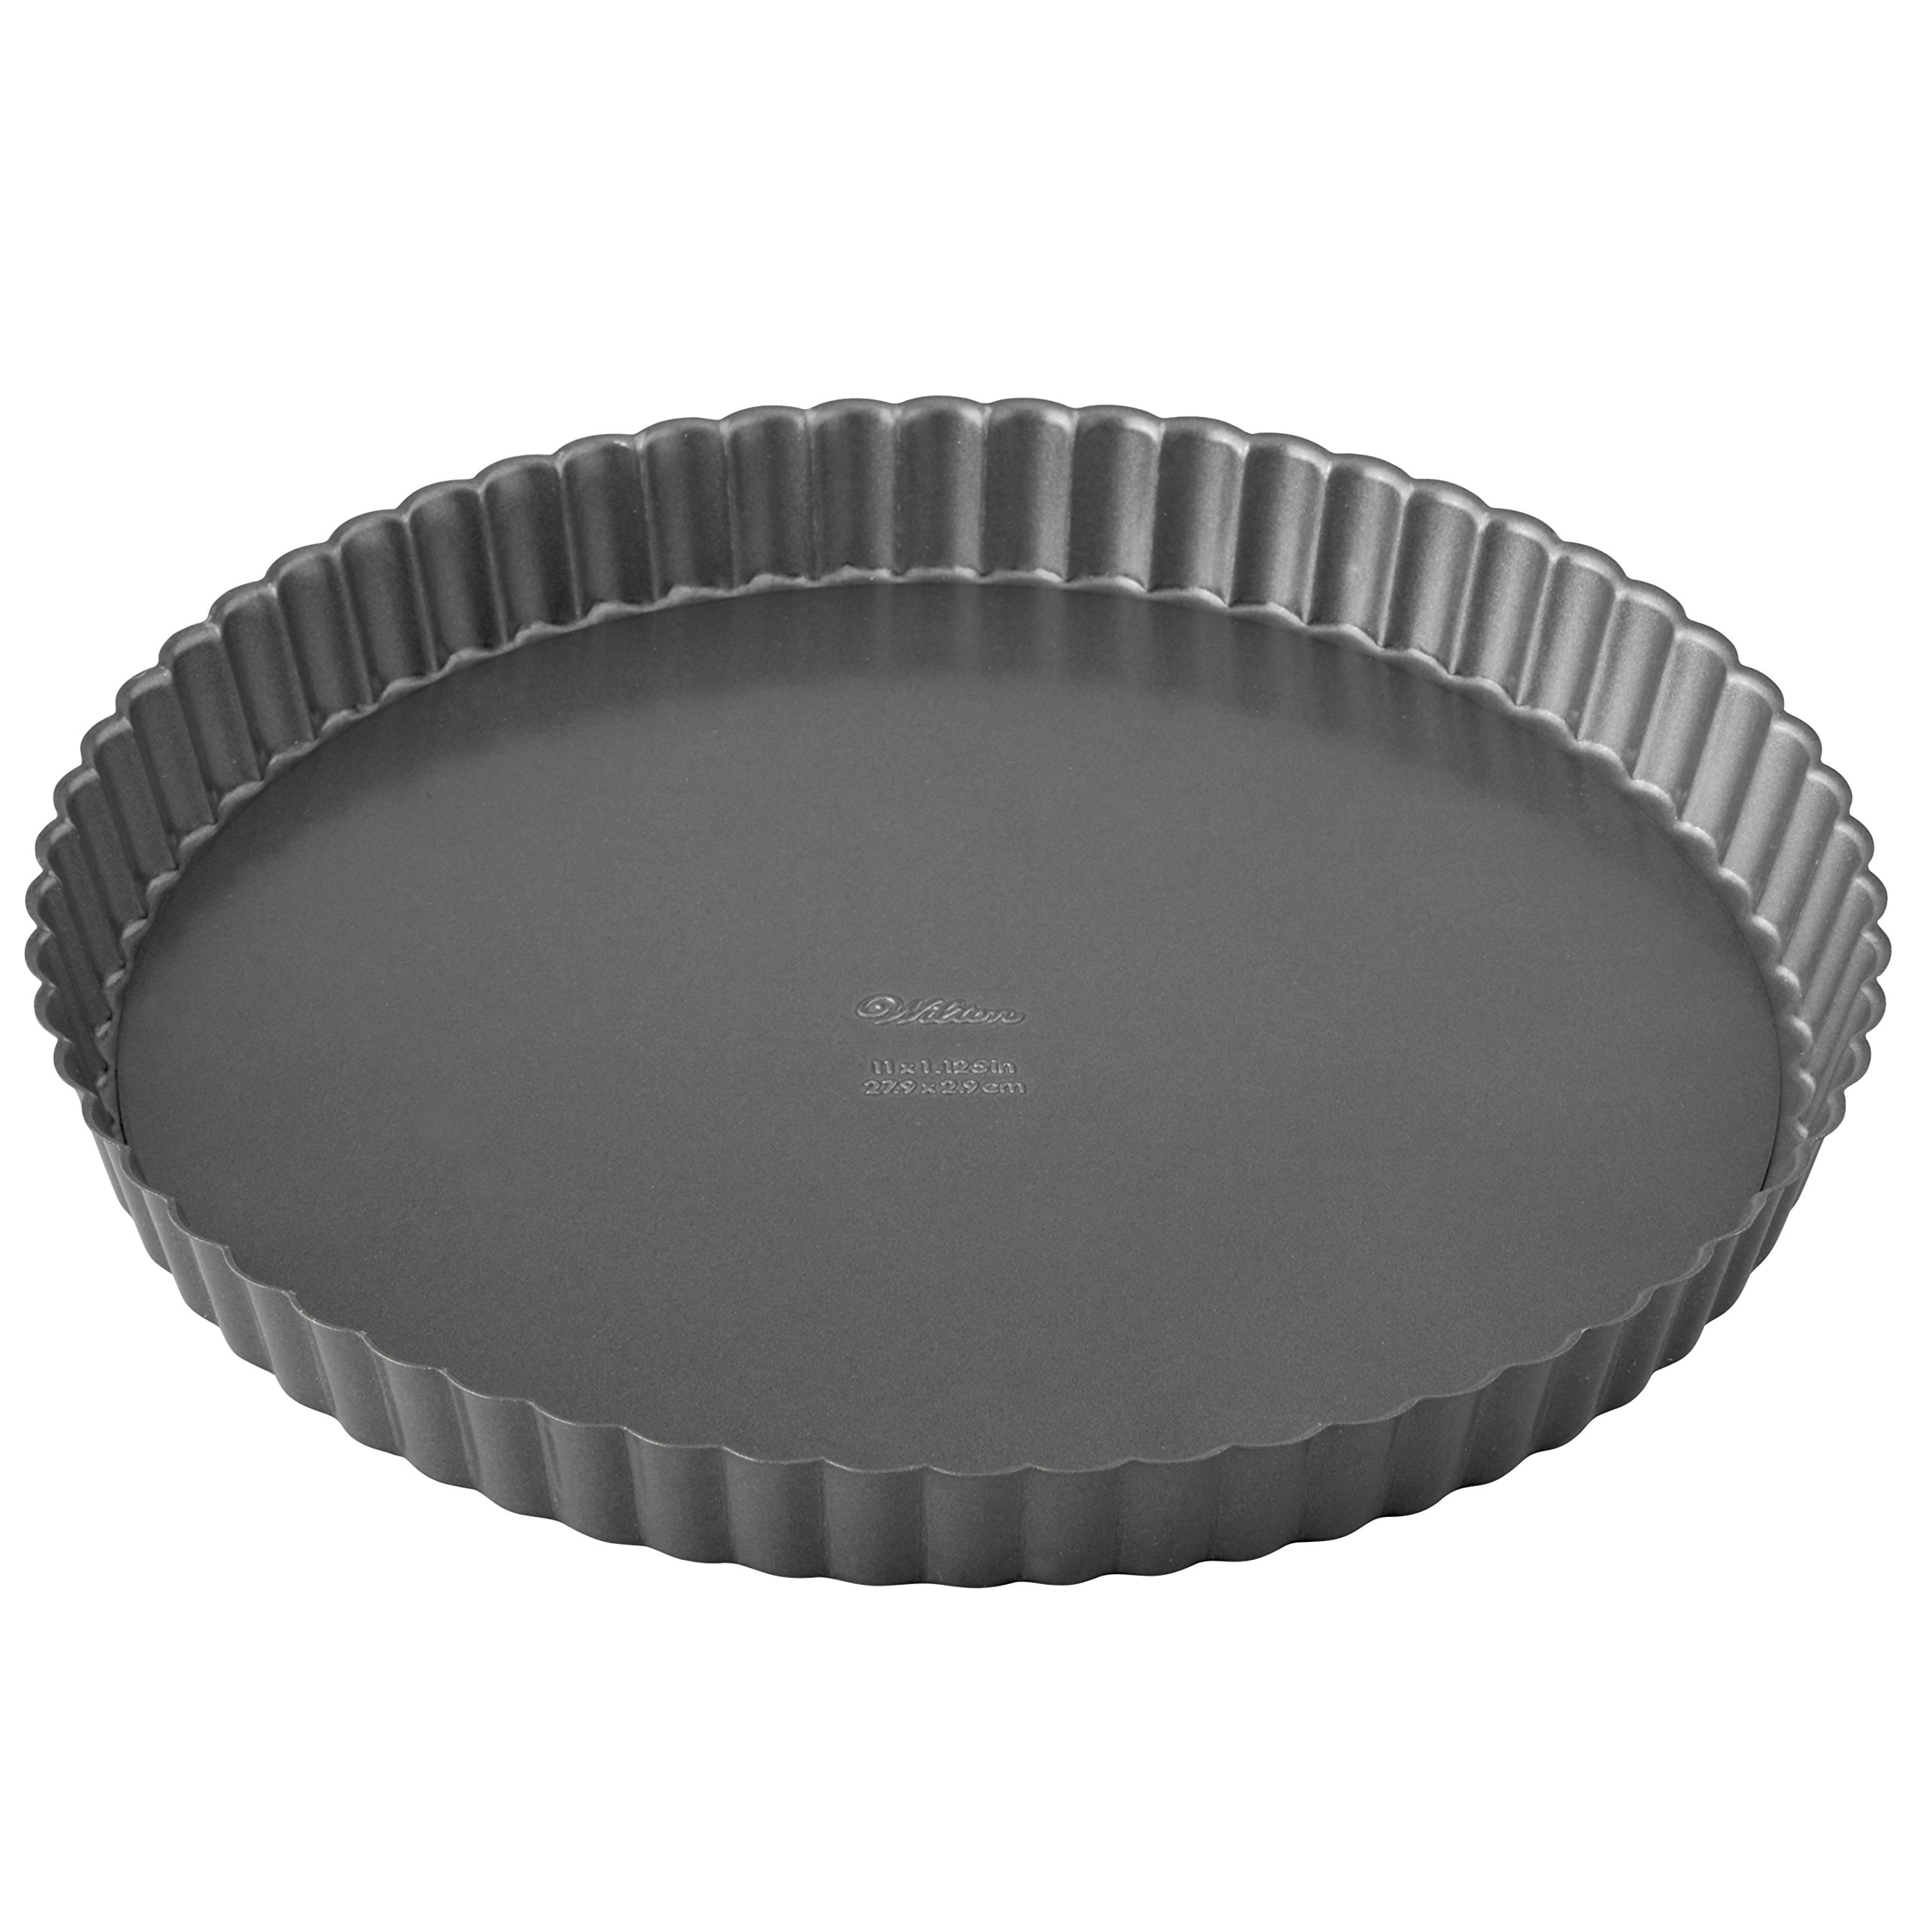 Wilton Excelle Elite Non-Stick Tart Pan and Quiche Pan with Removable Bottom, 11-Inch by Wilton (Image #3)